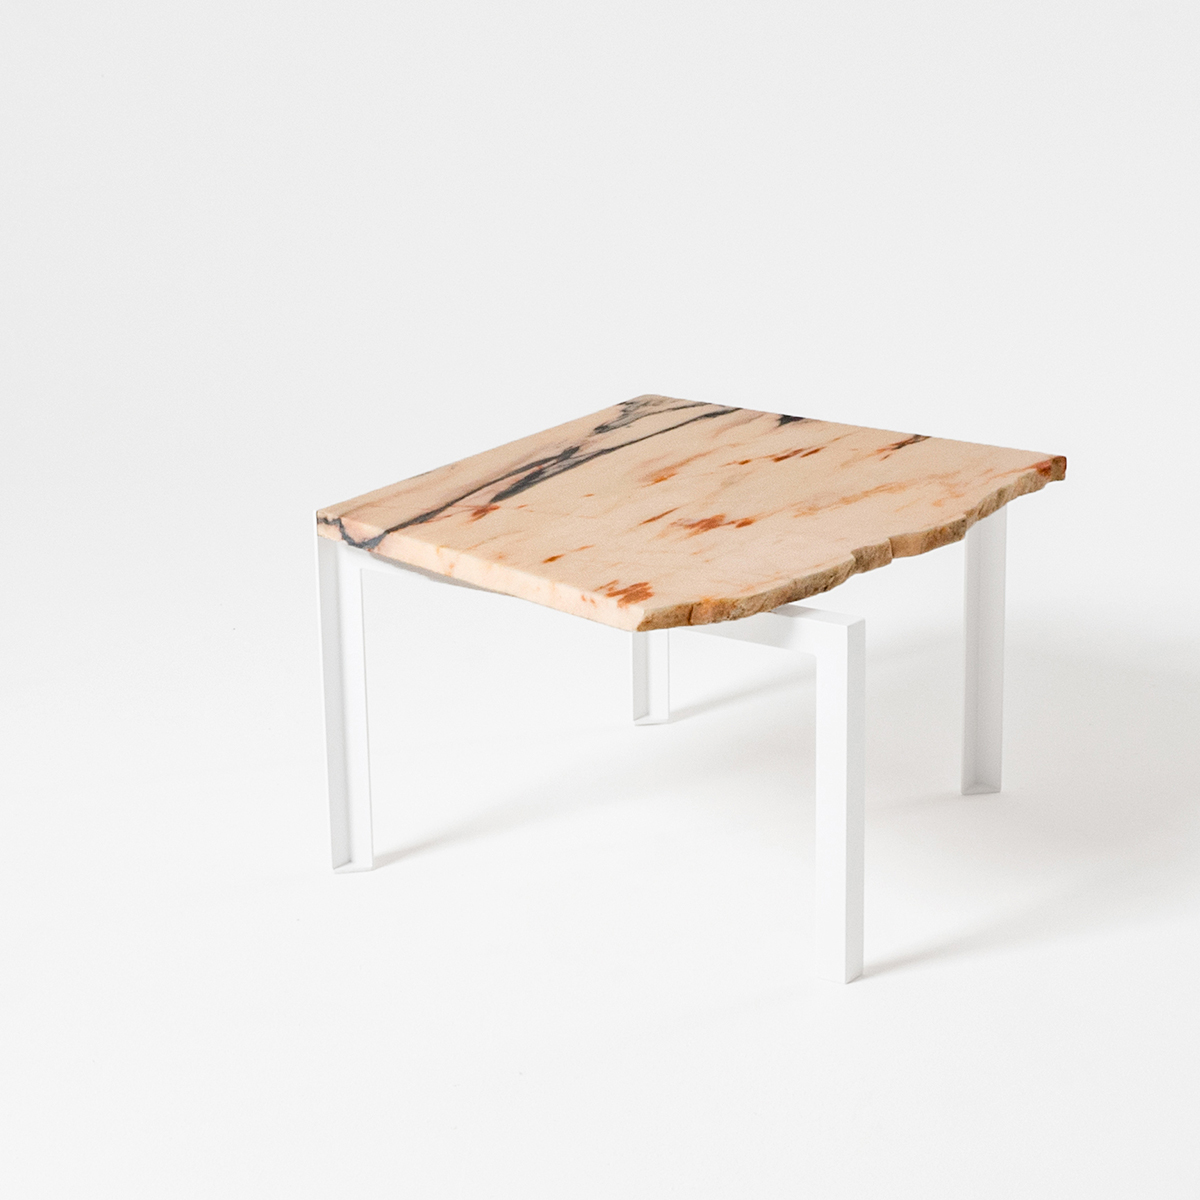 atelierhaussmann marble table petite table d 39 angle by ForPetite Table D Angle